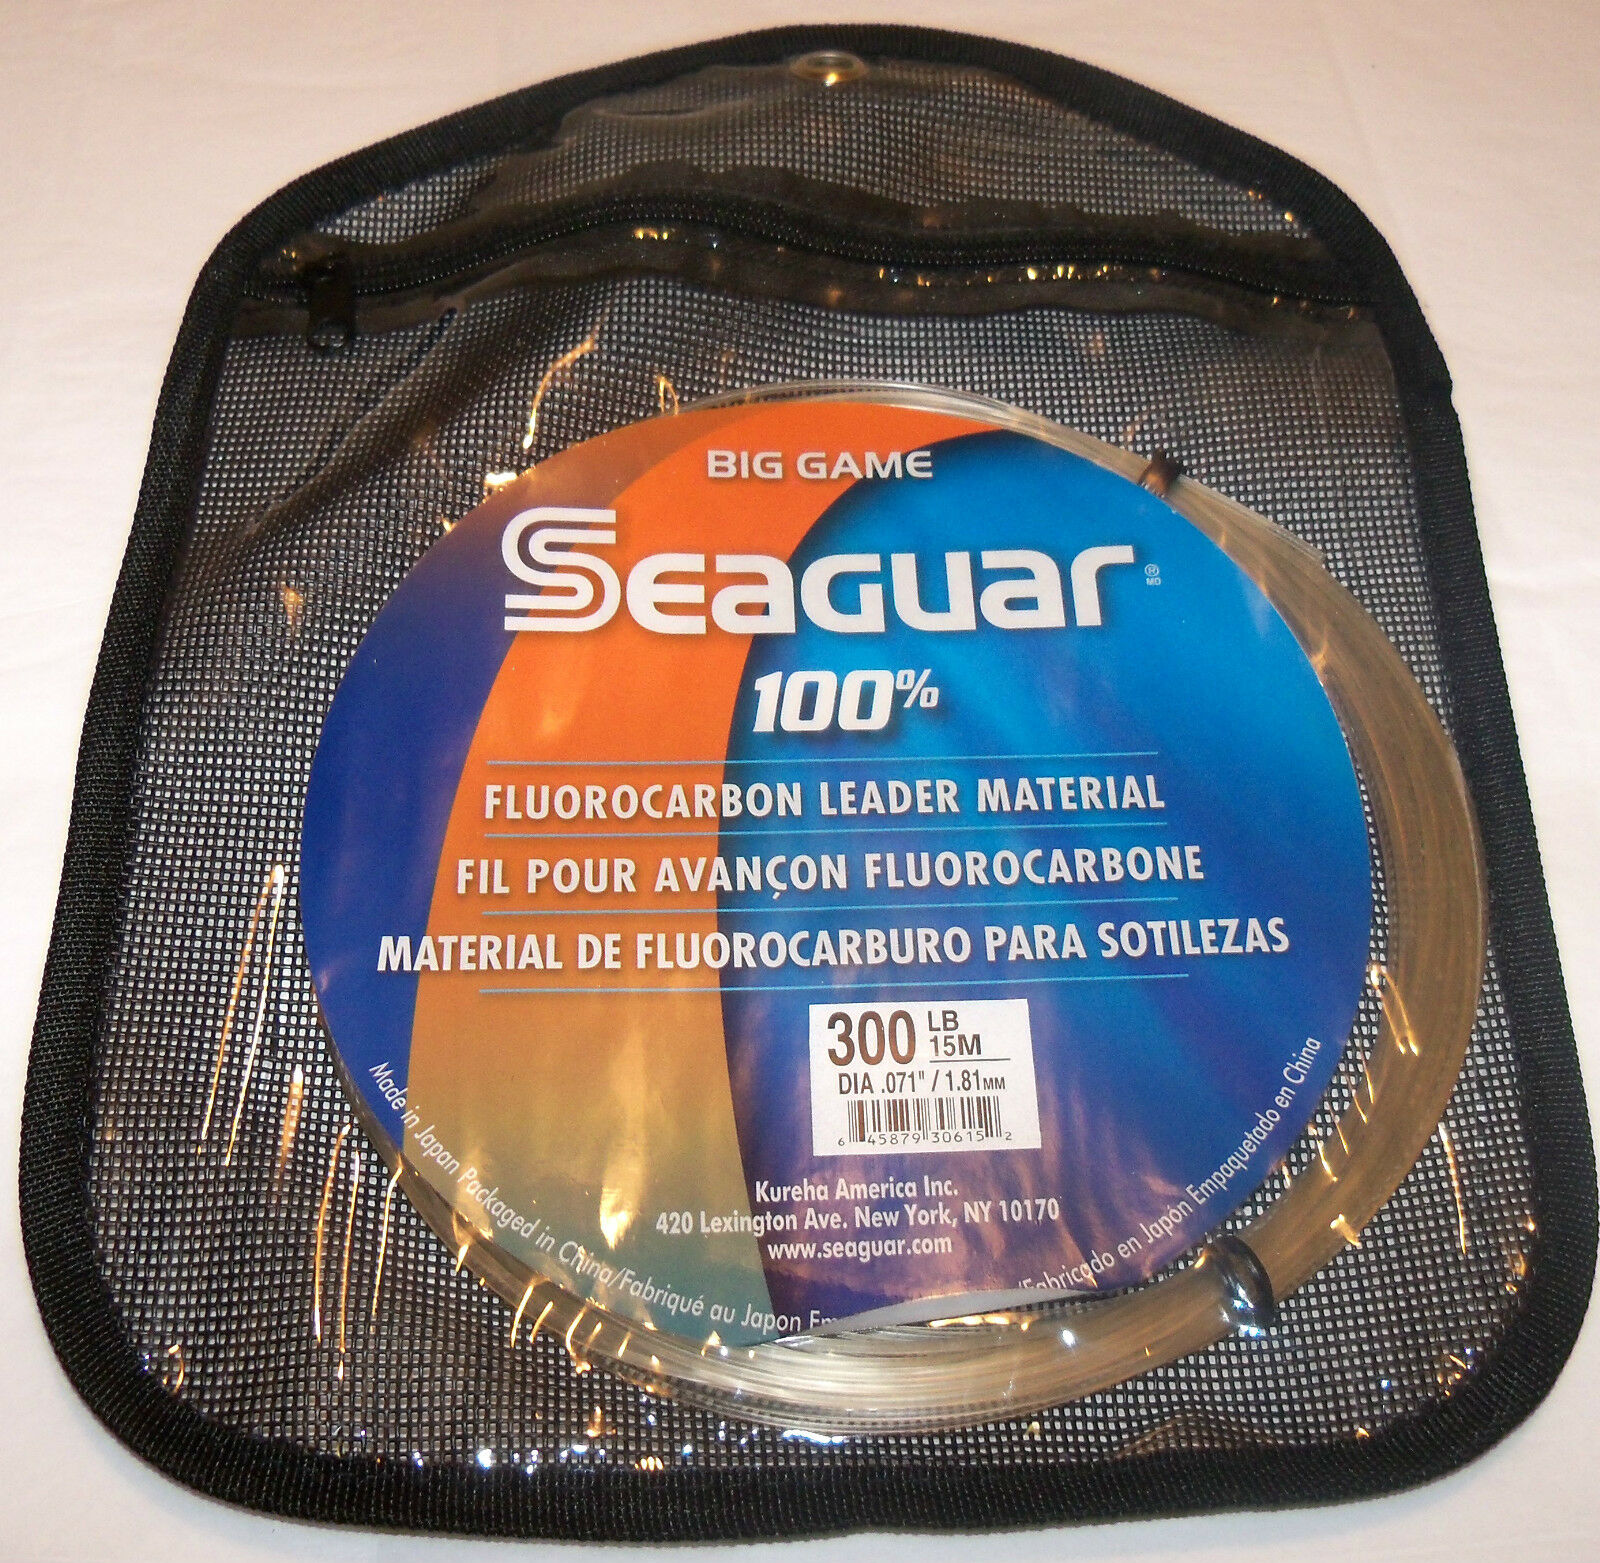 SEAGUAR - BIG GAME blueE LABEL  - 100% FLUgoldCARBON LEADER 15 METER COIL - CLEAR  selling well all over the world